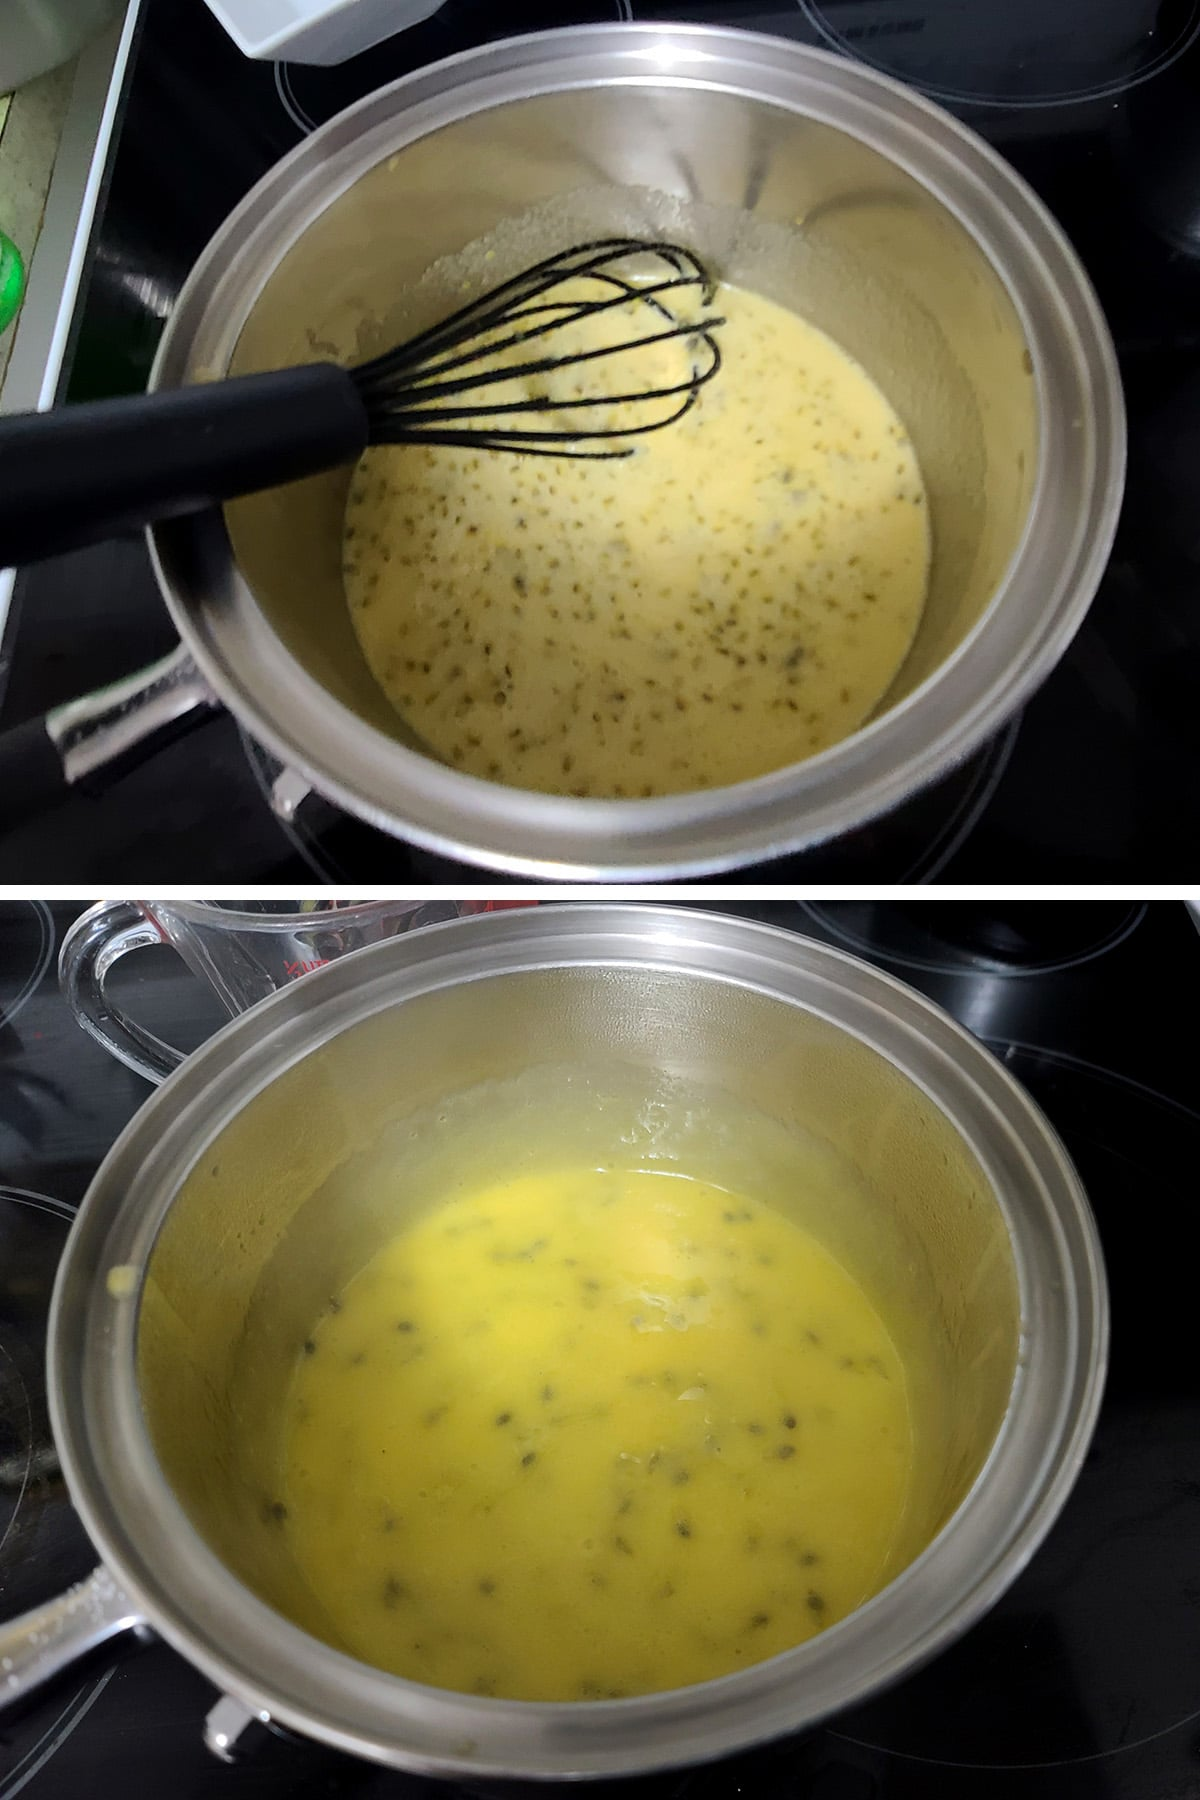 The pot of passion fruit curd being cooked, it's steaming.